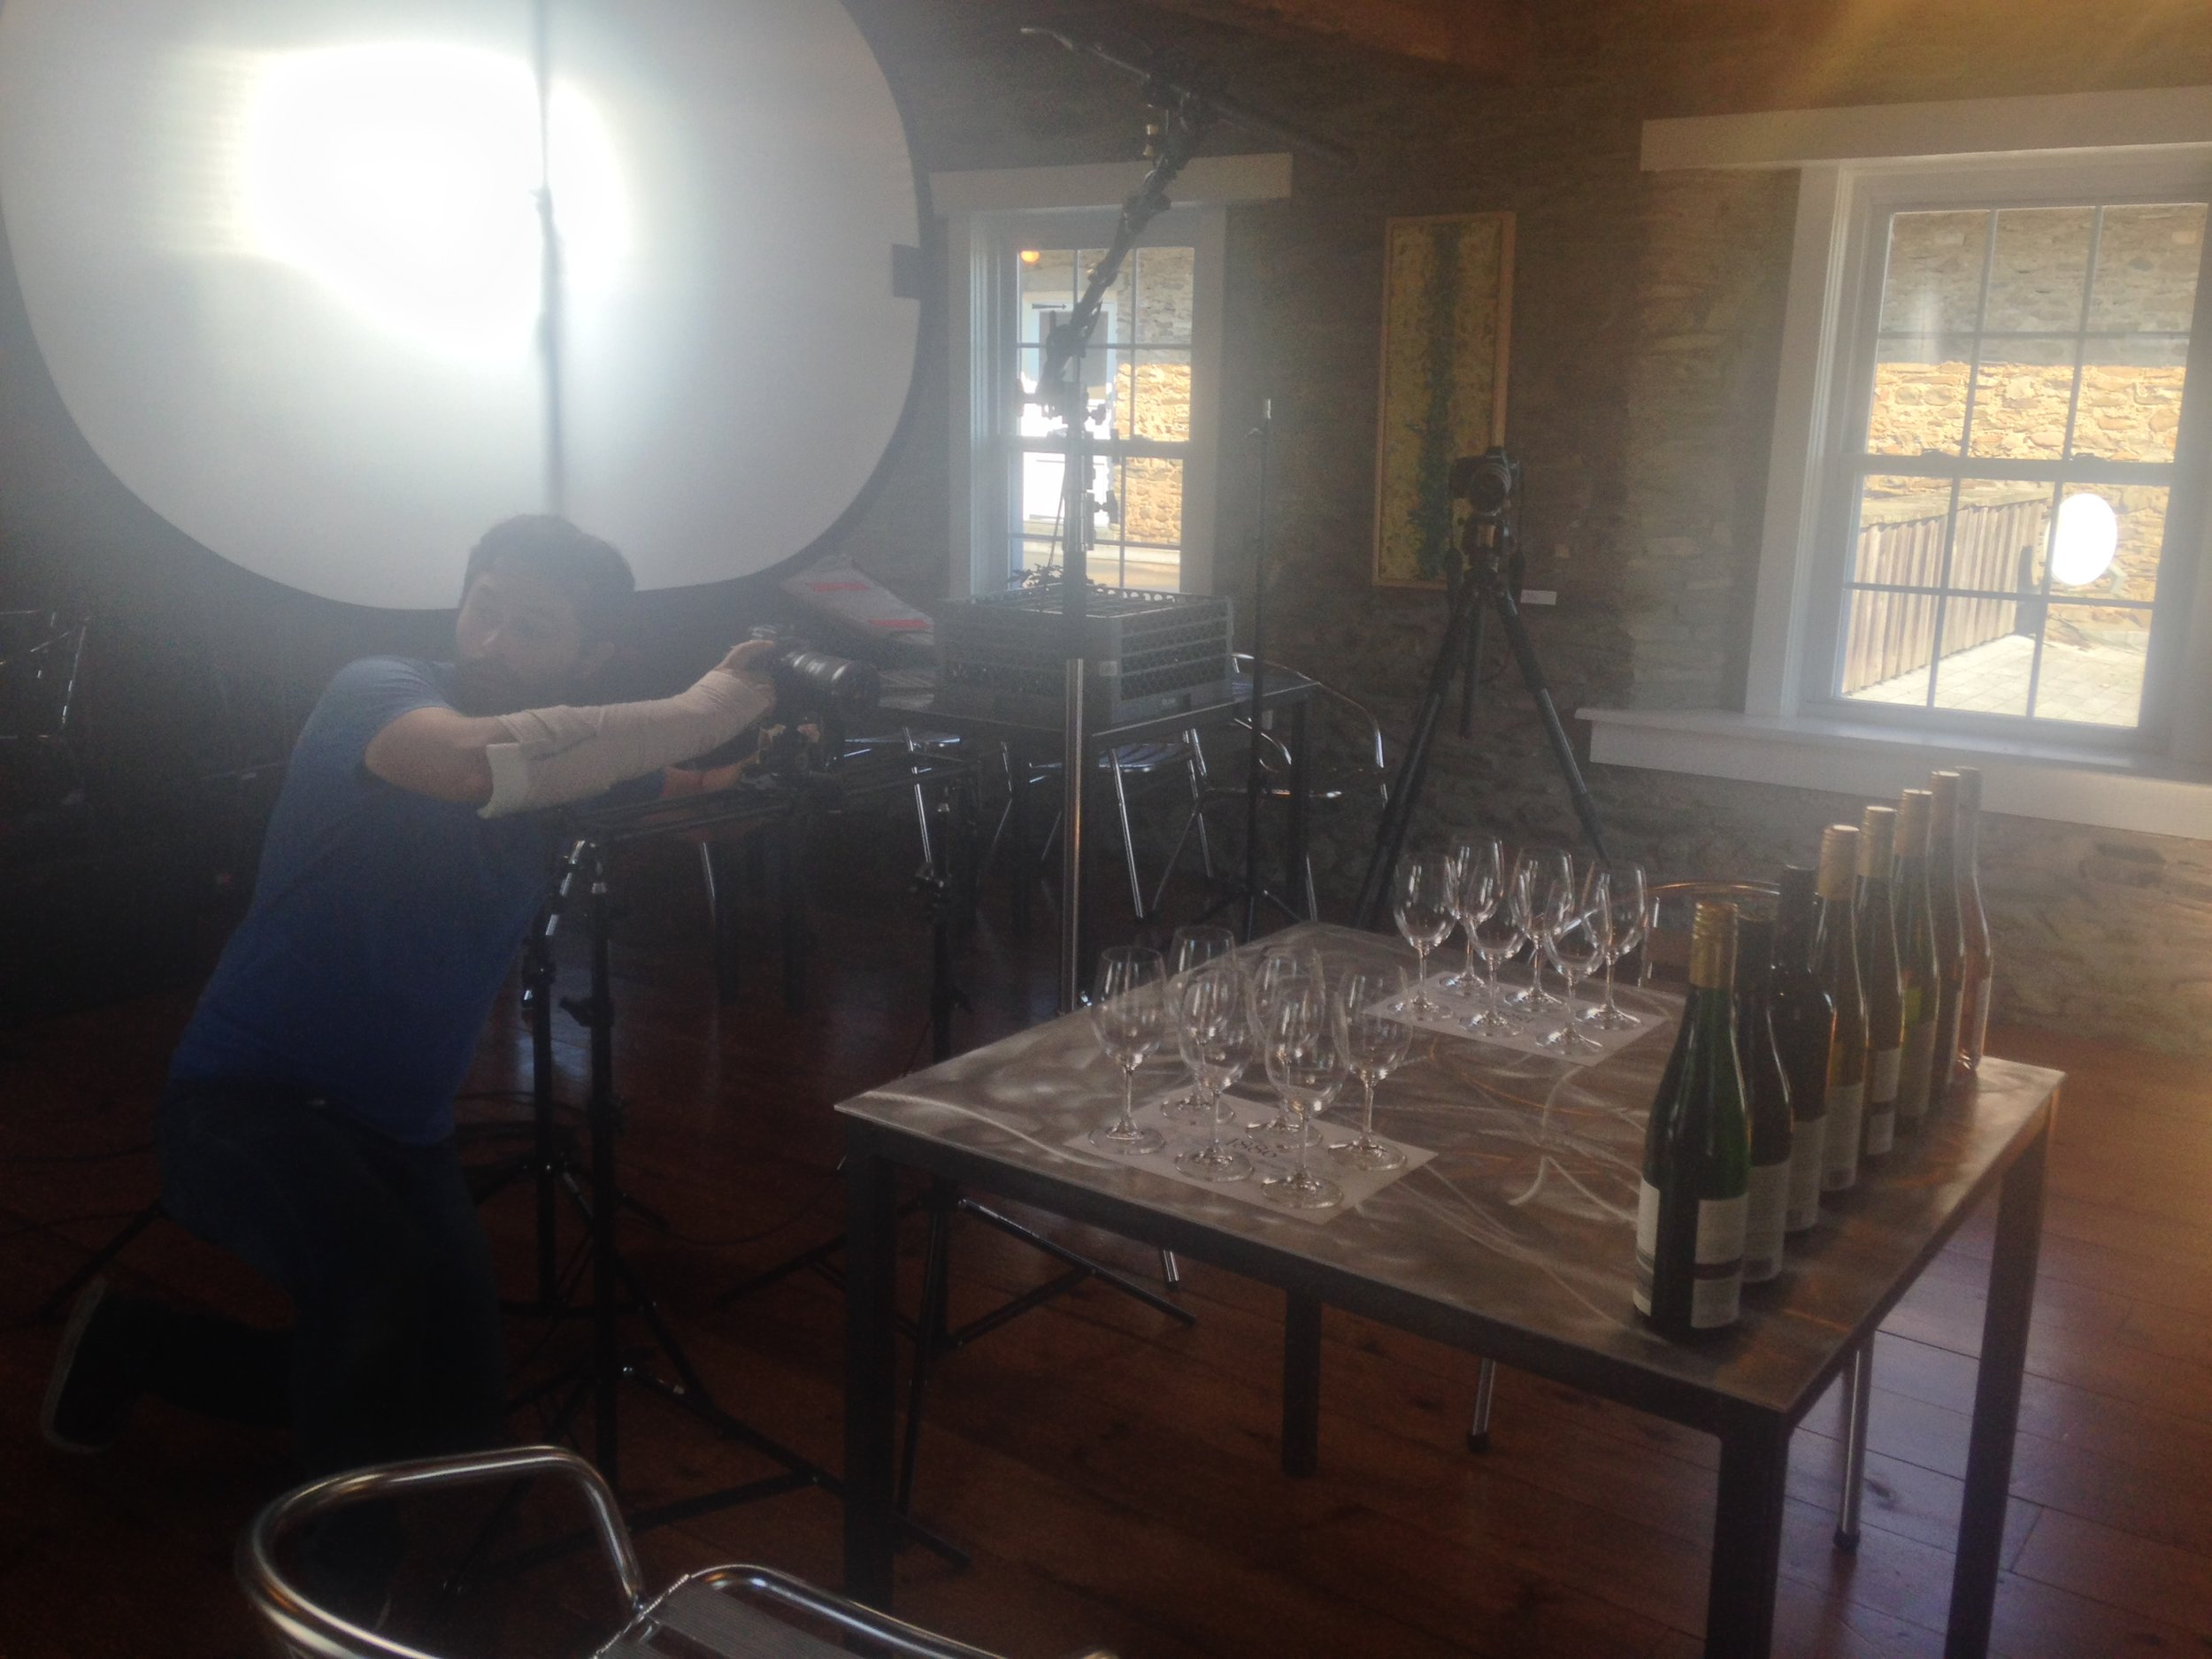 Prepping a scene in the 1886 Reserve Tasting Room at Dr. Konstantin Frank Wine Cellars.